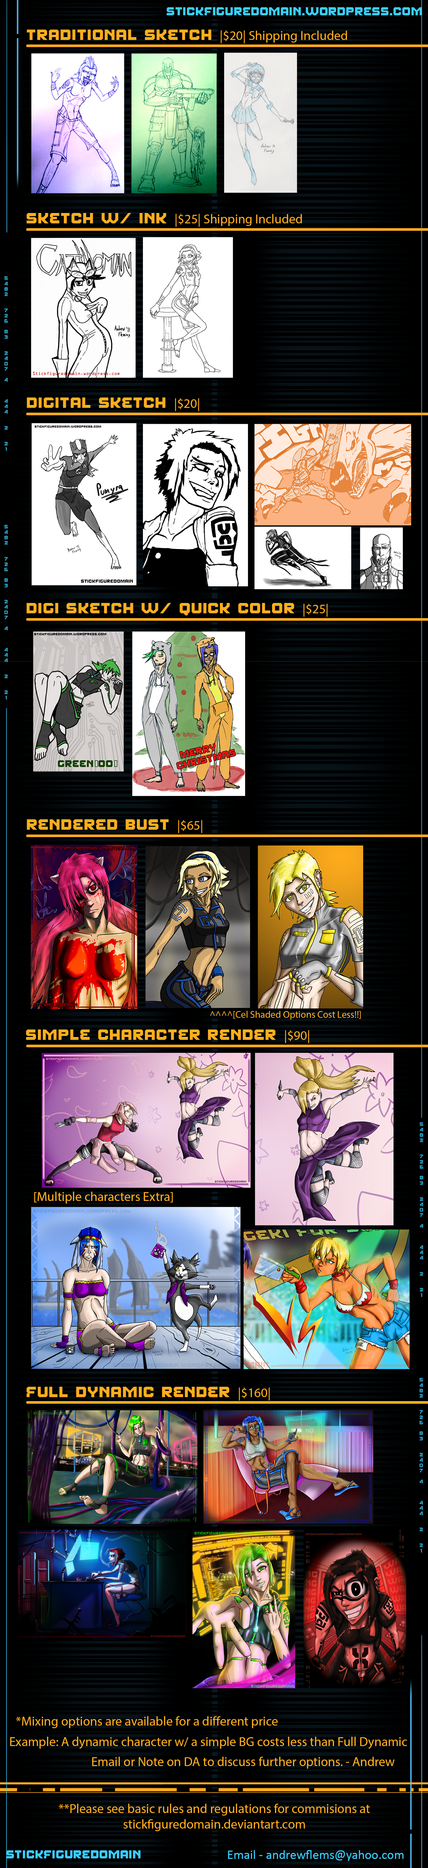 Commission Pricing Guide 2016 by Stickfigure5000